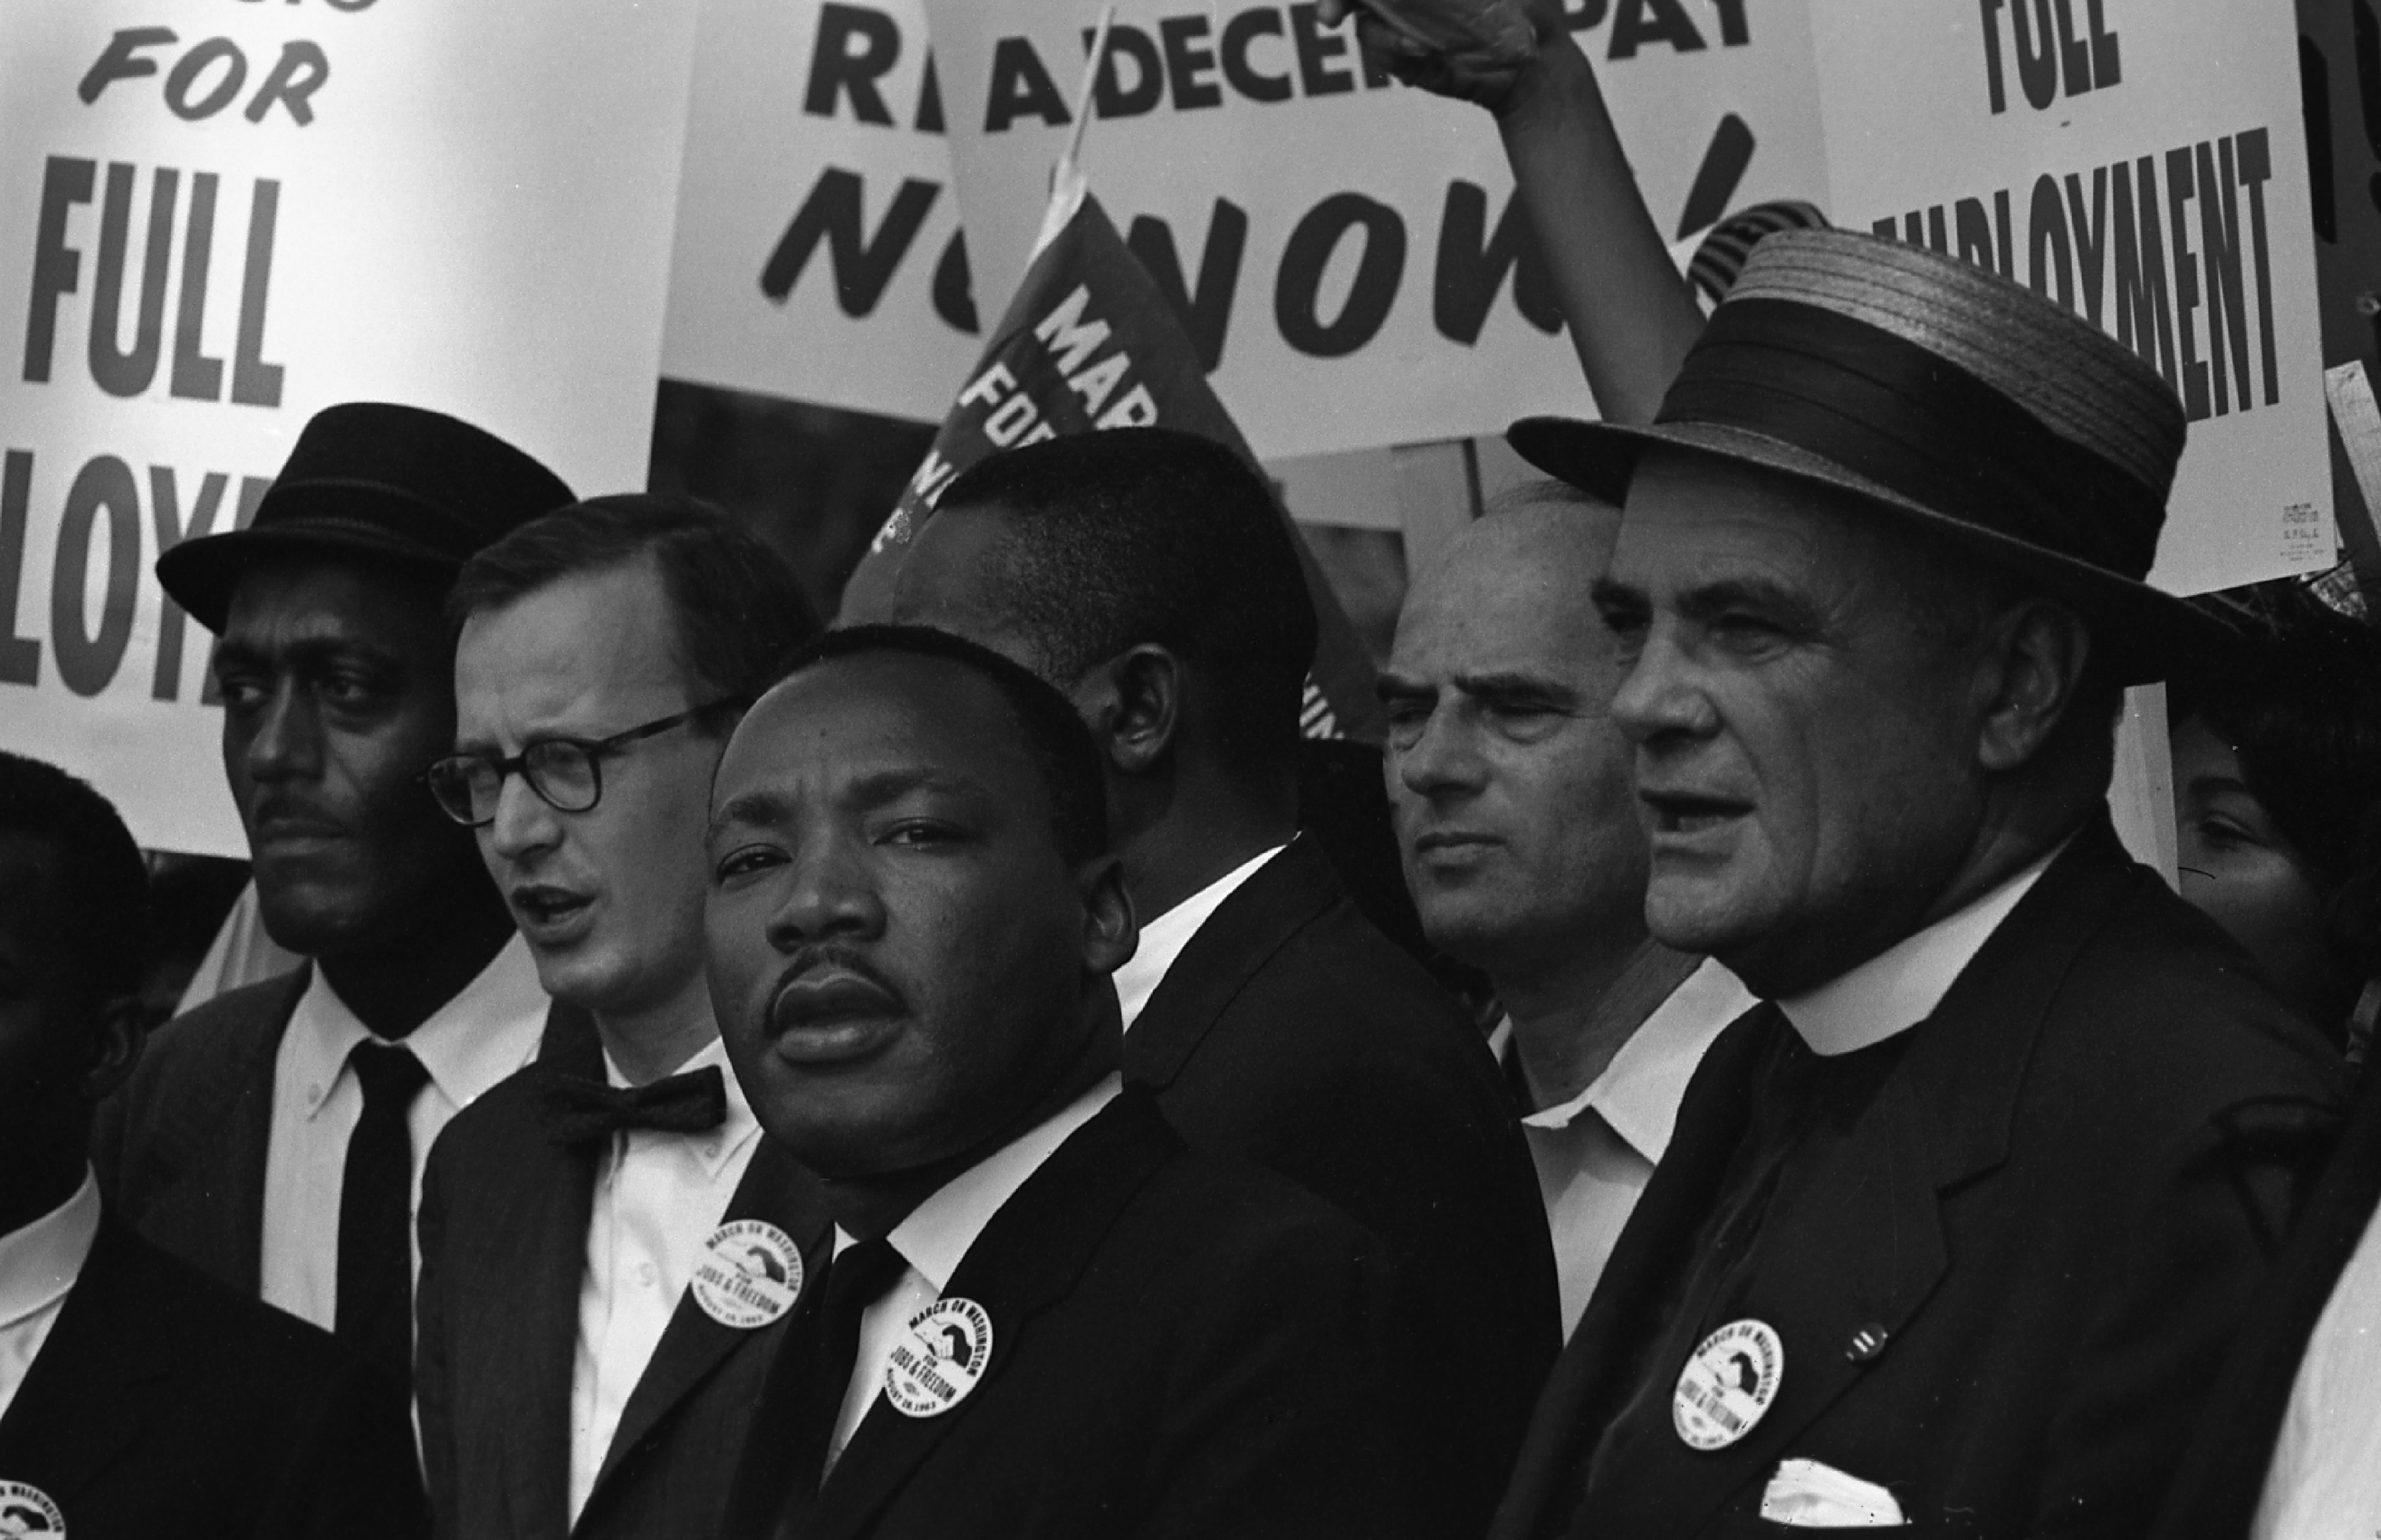 Martin Luther King, Jr. At The March On Washington